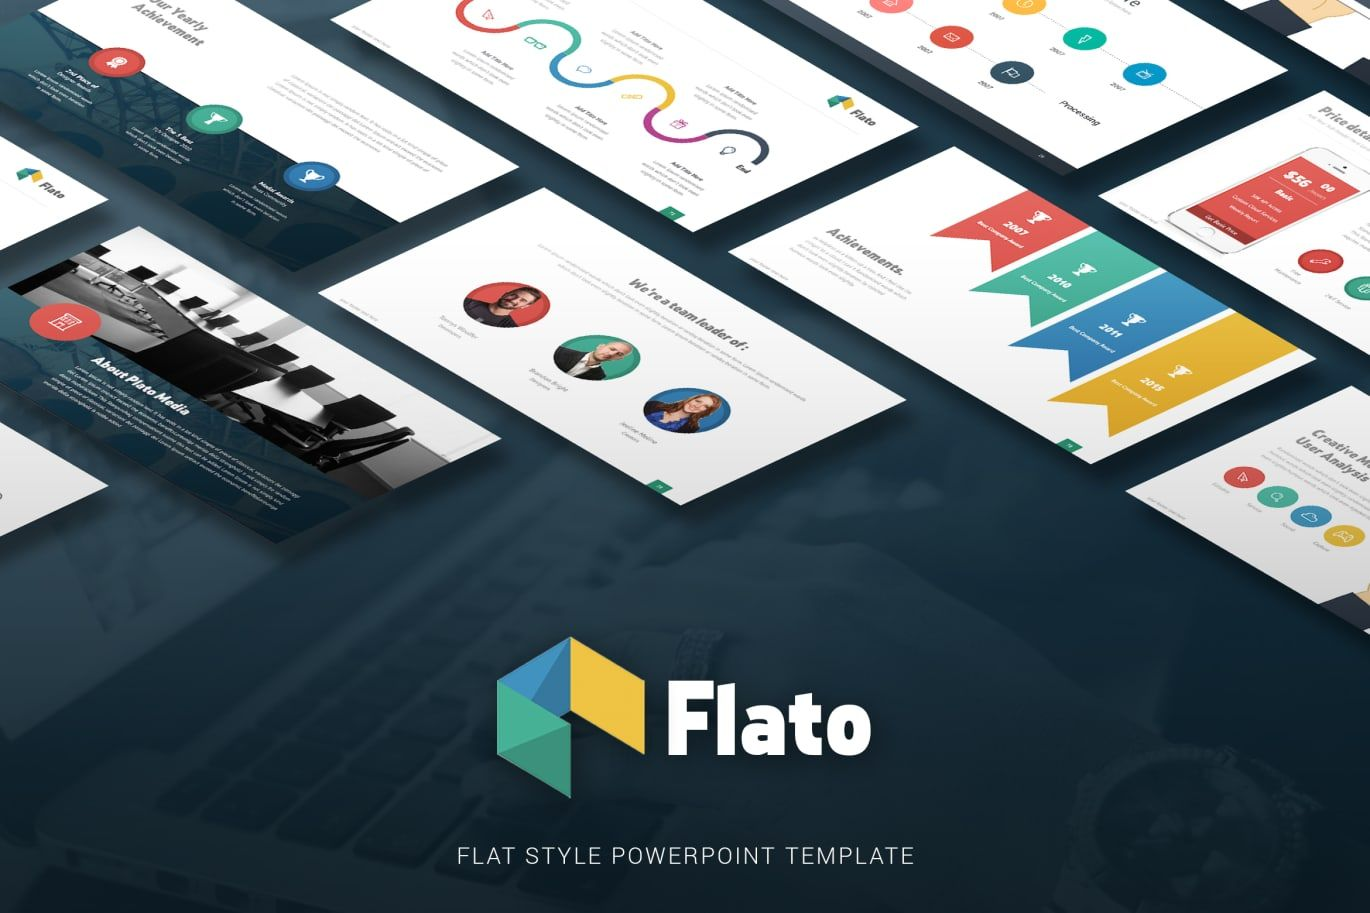 Flato flat multipurpose powerpoint template by slidewerk on envato flato flat multipurpose powerpoint template by slidewerk on envato elements toneelgroepblik Image collections